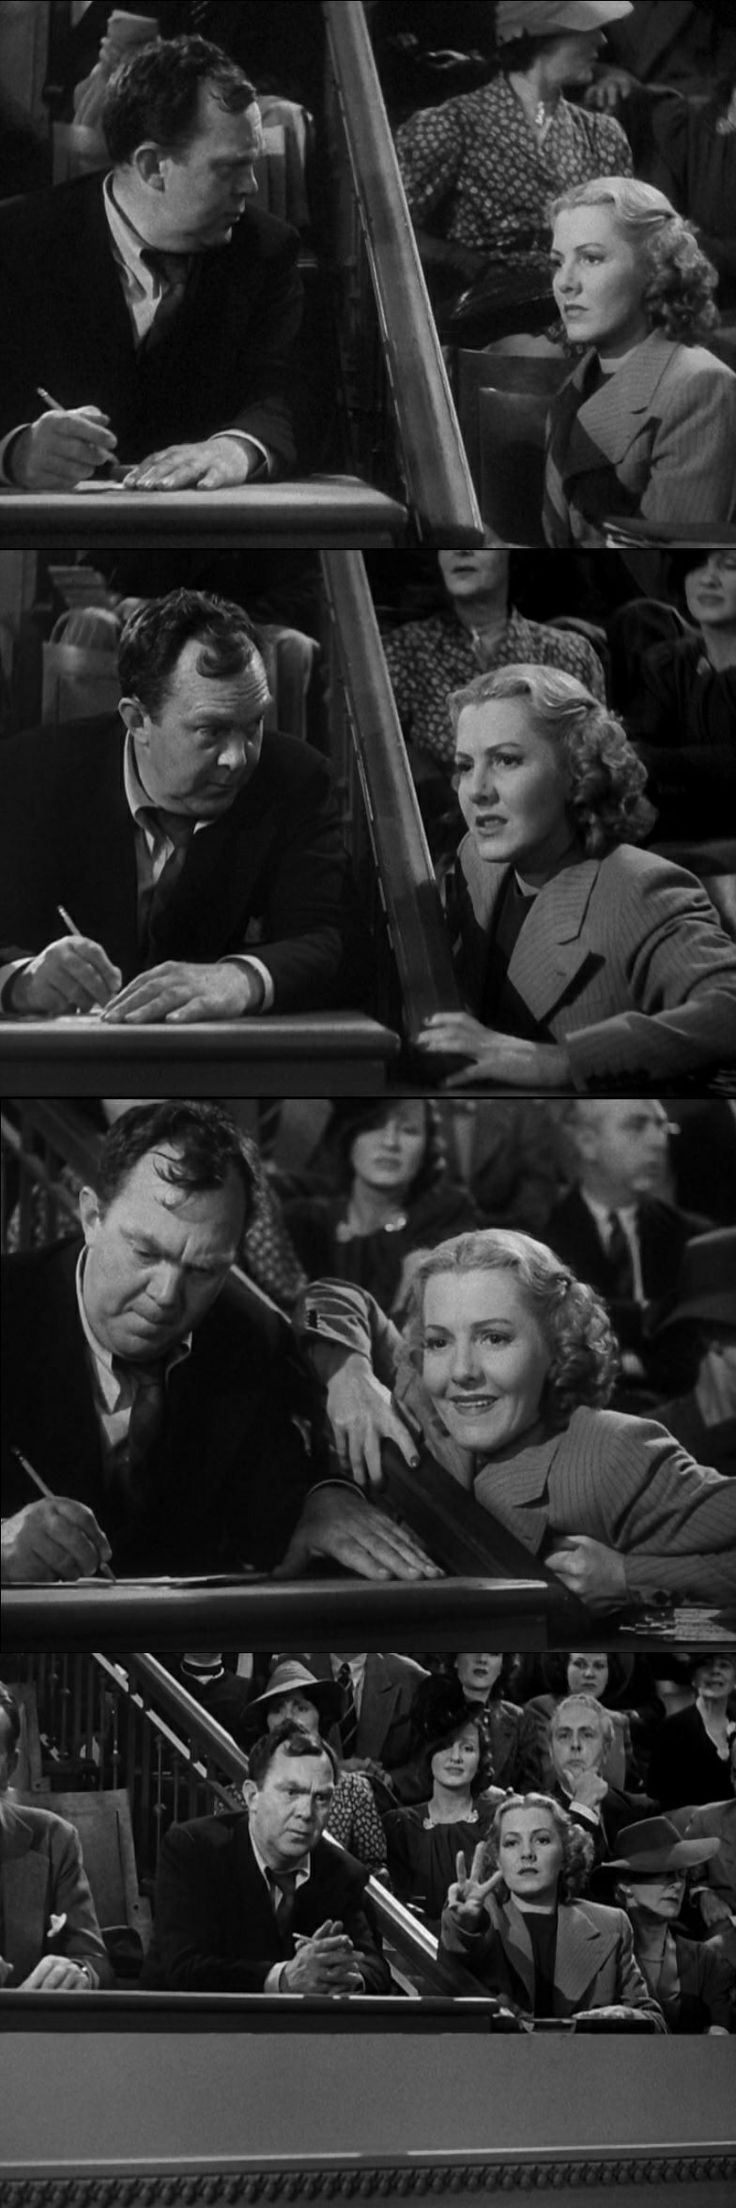 Clarissa Saunders, played by Jean Arthur in Mr. Smith Goes to Washington 1939, is the woman who manipulates everything behind the scenes.  Knowing everything about Willow Creek, she allows Smith to present the project, and when Mr. Smith needs to fight against the Taylor machine, he gets coached by Miss Saunders.